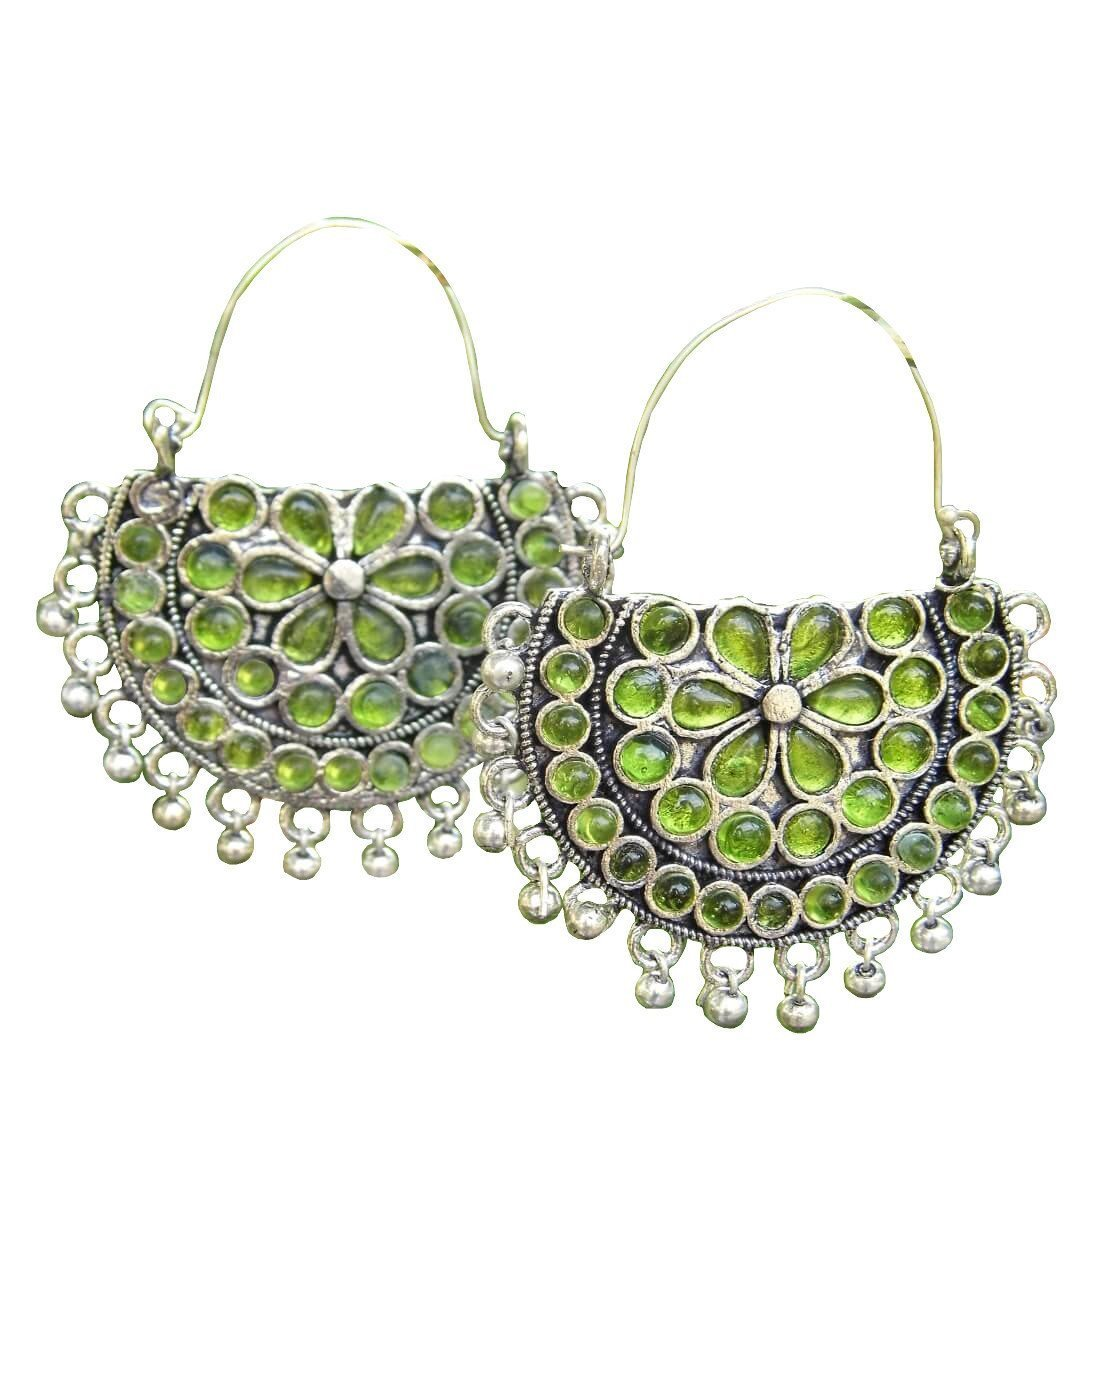 Afghani Earrings/Chandbalis In Alloy Metal 26